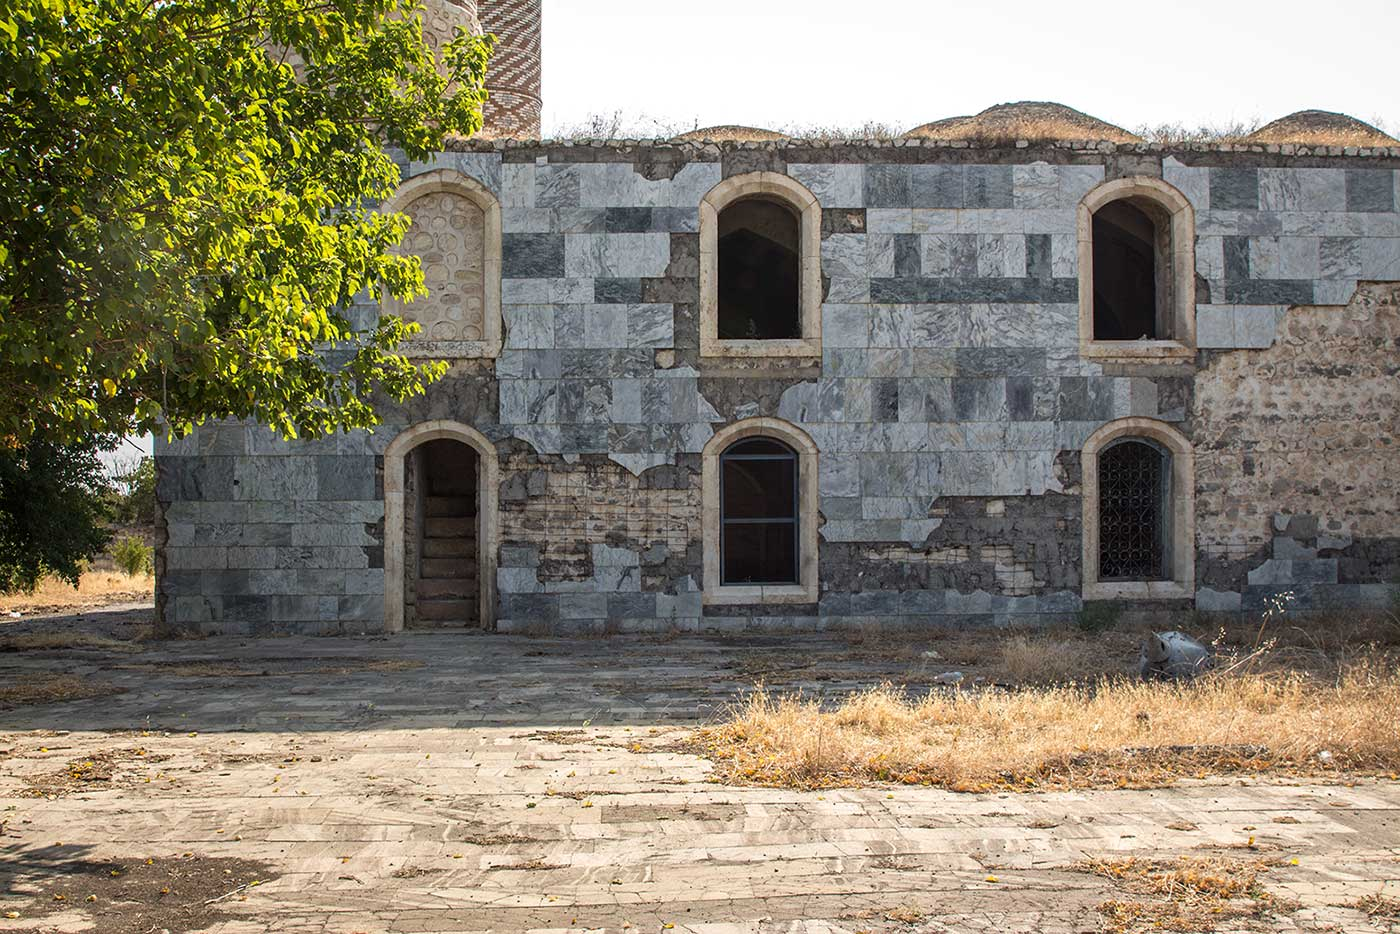 Park and fountains have given way to weeds and ruin. Agdam, Nagorno-Karabakh.